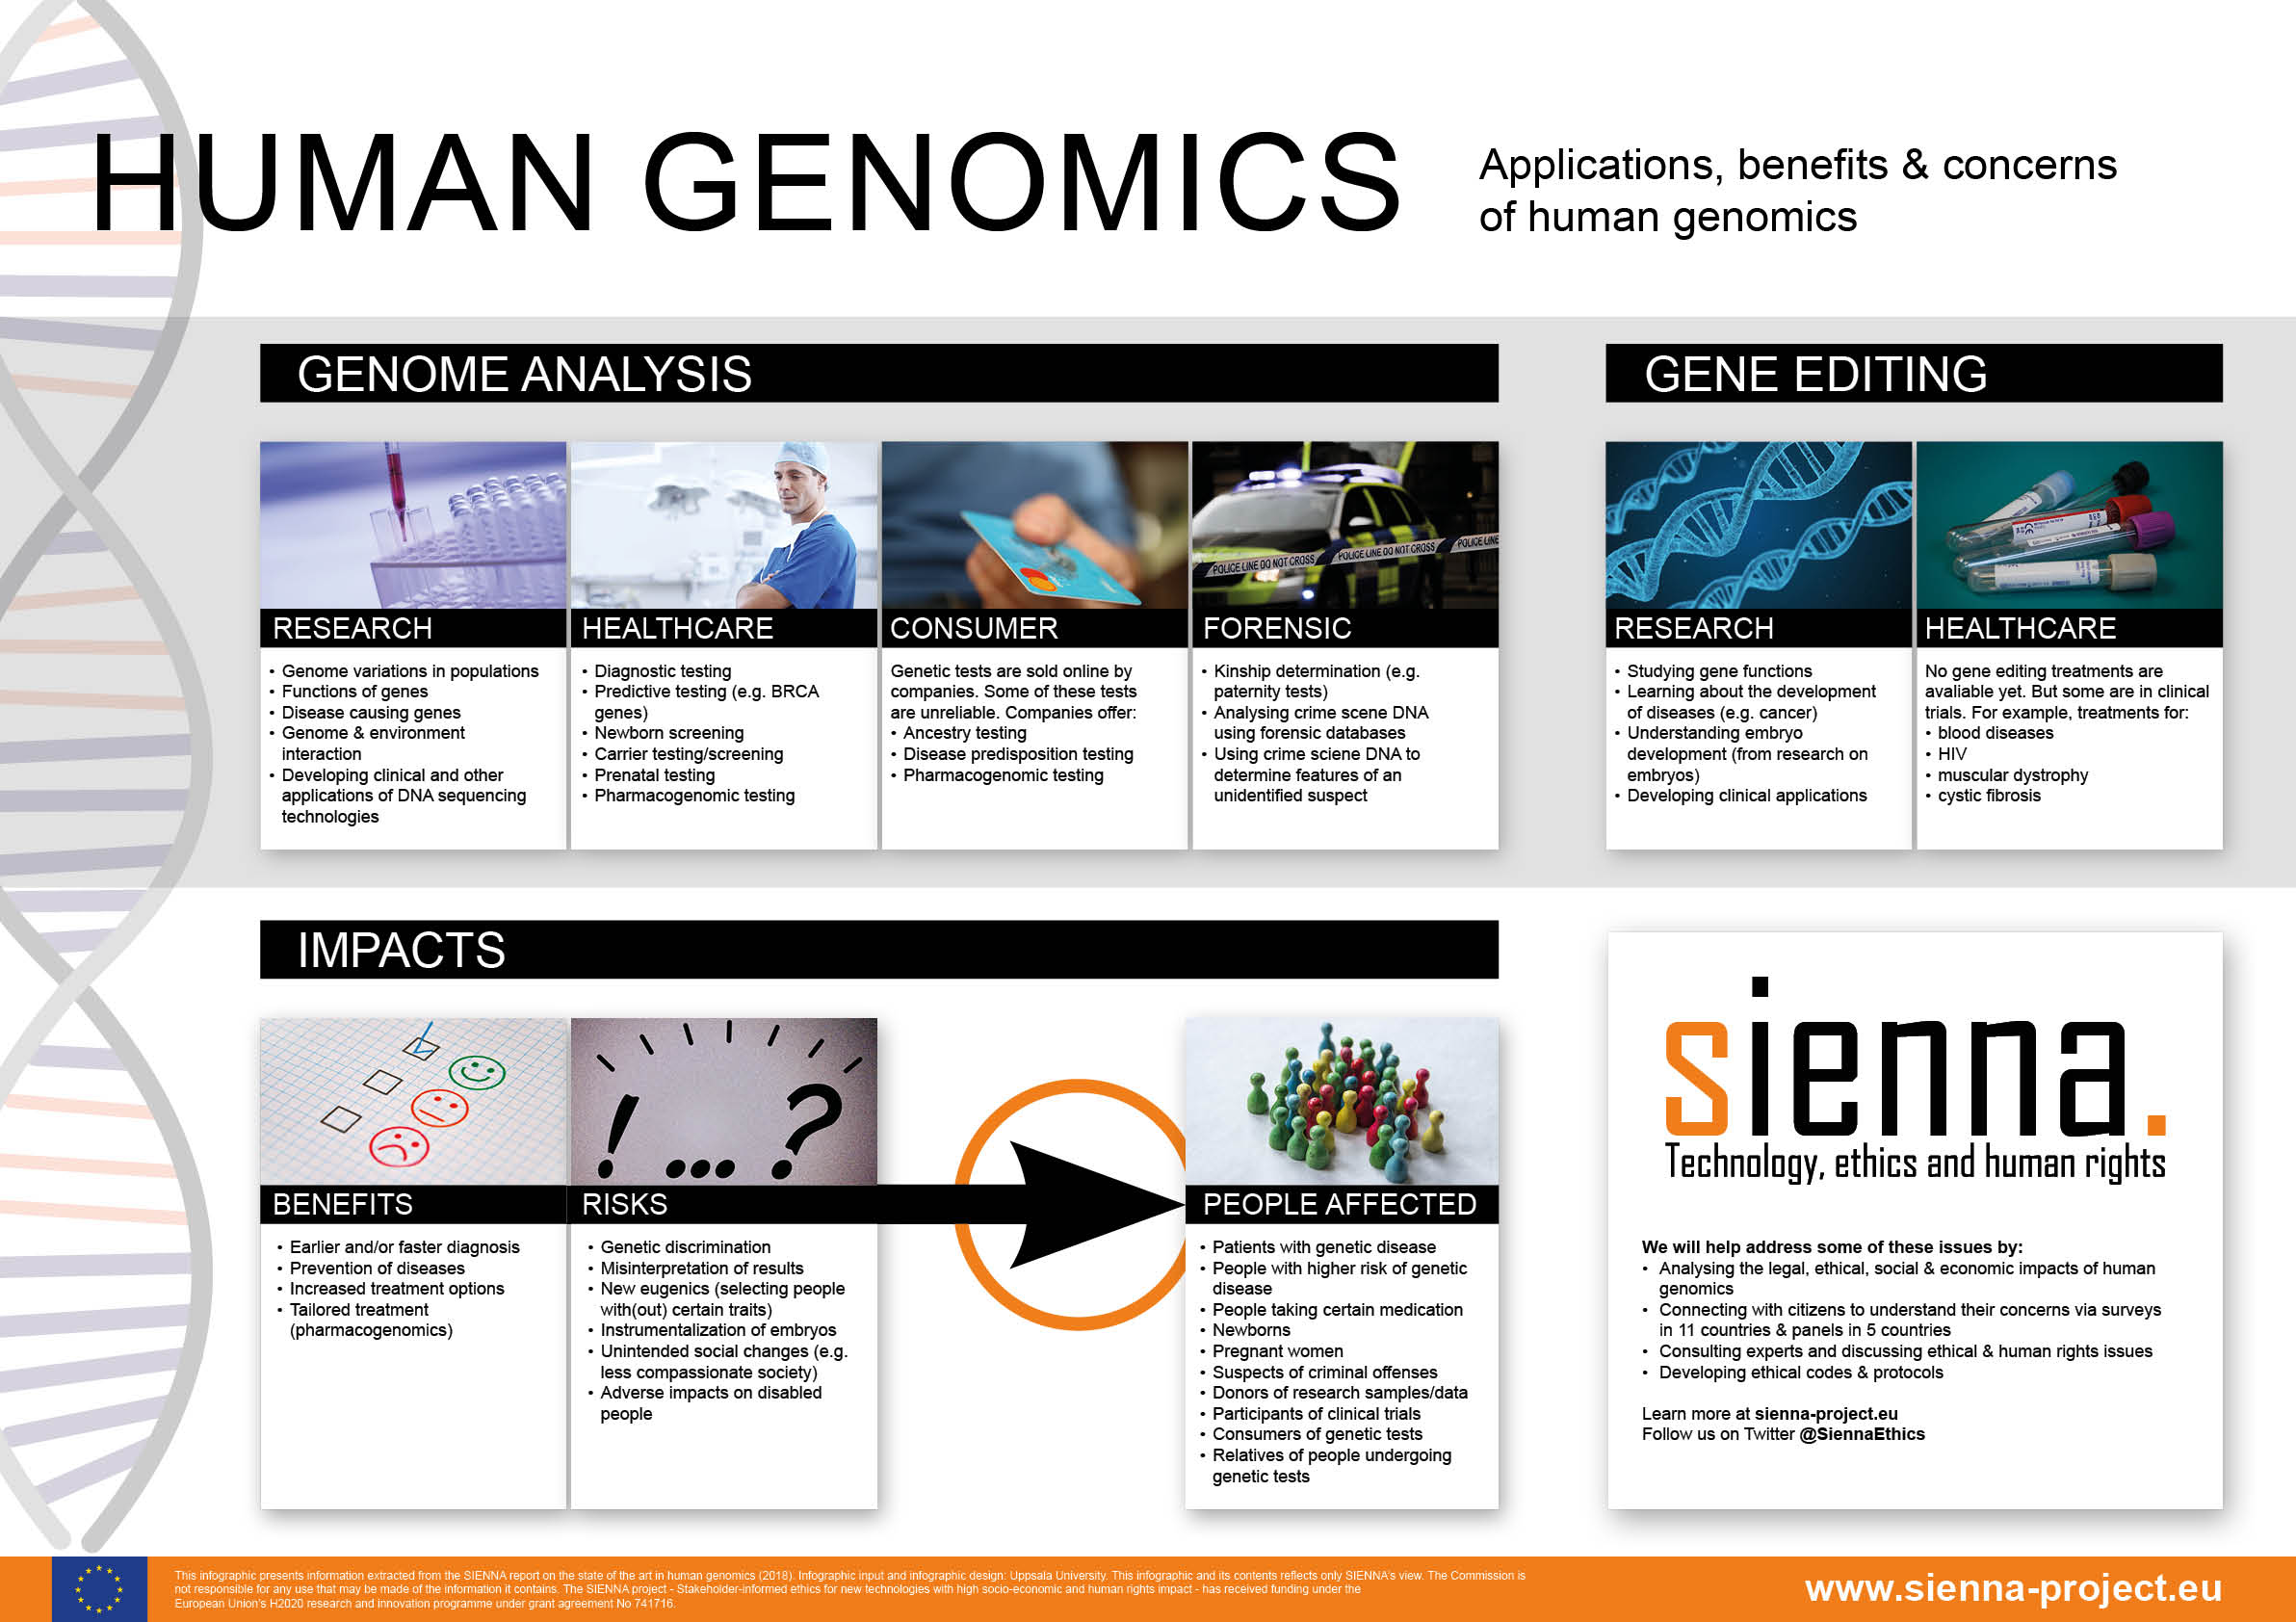 Applicatoins, benefits and concerns of human genomics